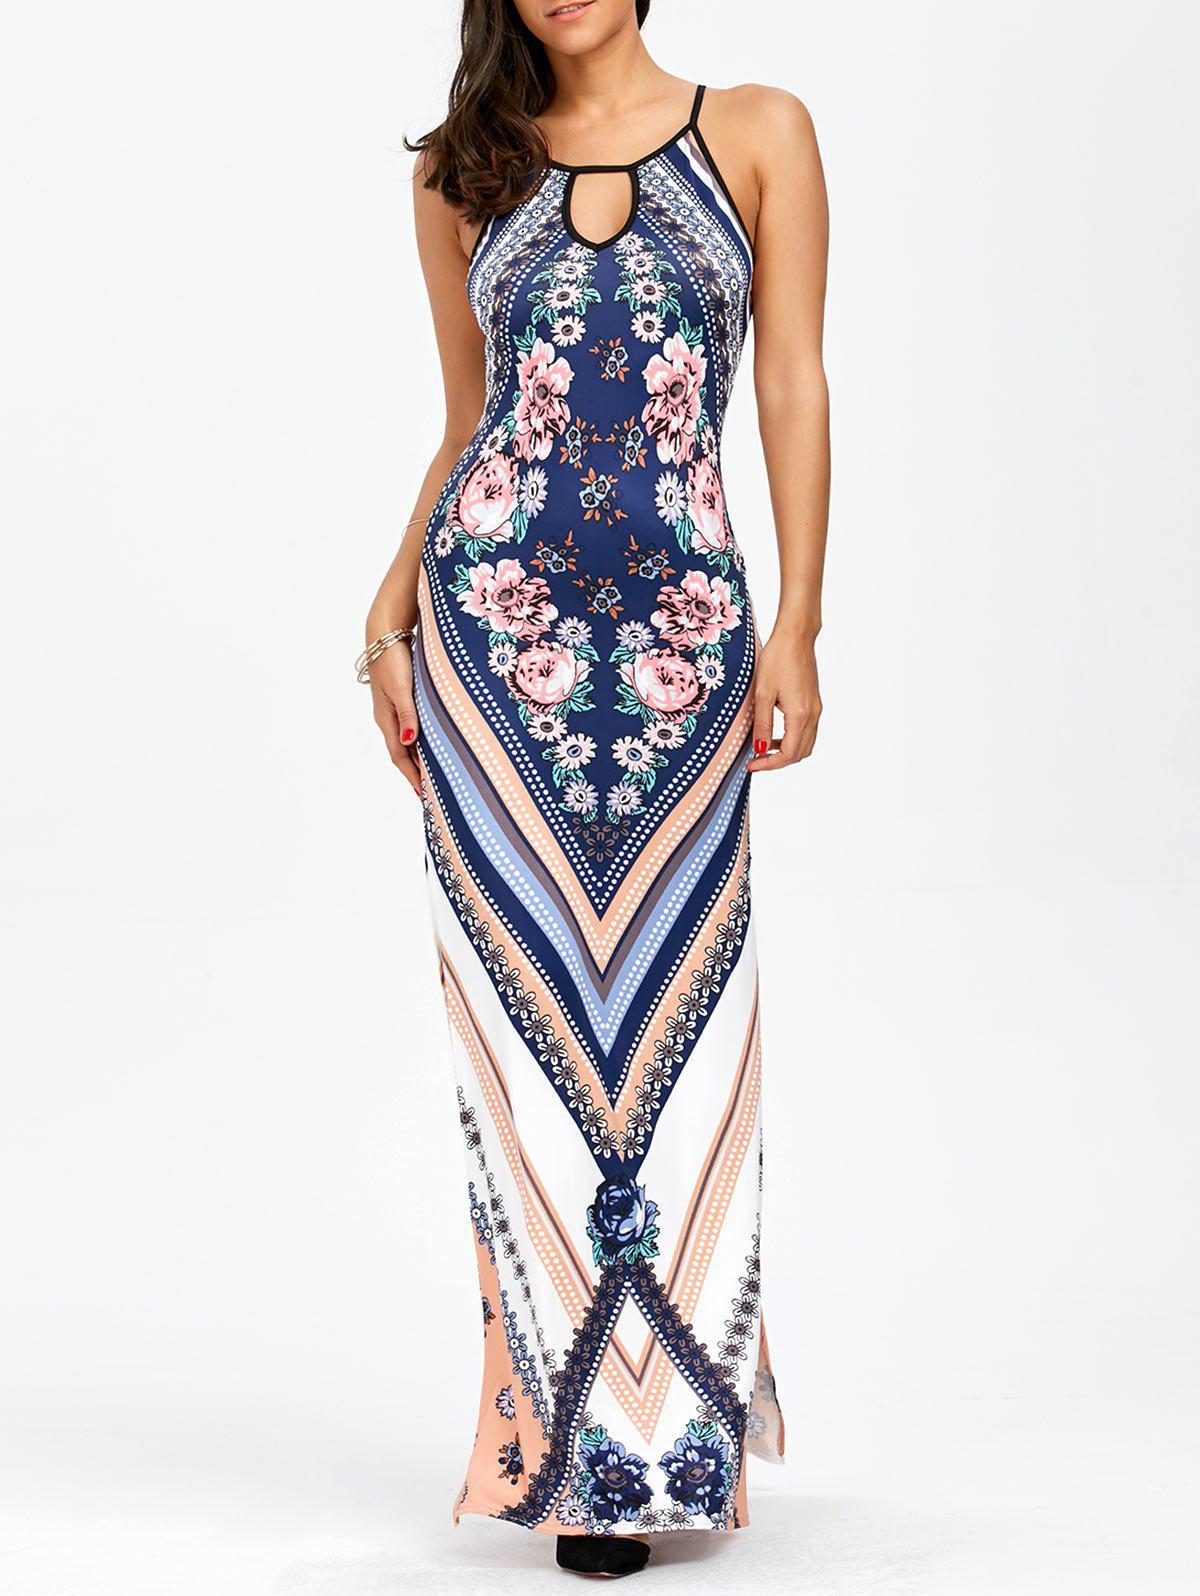 Keyhole Neck Floral Chevron Tall Maxi DressWOMEN<br><br>Size: L; Color: BLUE; Style: Bohemian; Material: Polyester; Silhouette: Sheath; Dresses Length: Floor-Length; Neckline: Keyhole Neck; Sleeve Length: Sleeveless; Waist: Natural; Pattern Type: Floral; Placement Print: Yes; With Belt: No; Season: Summer; Weight: 0.2800kg; Package Contents: 1 x Dress;